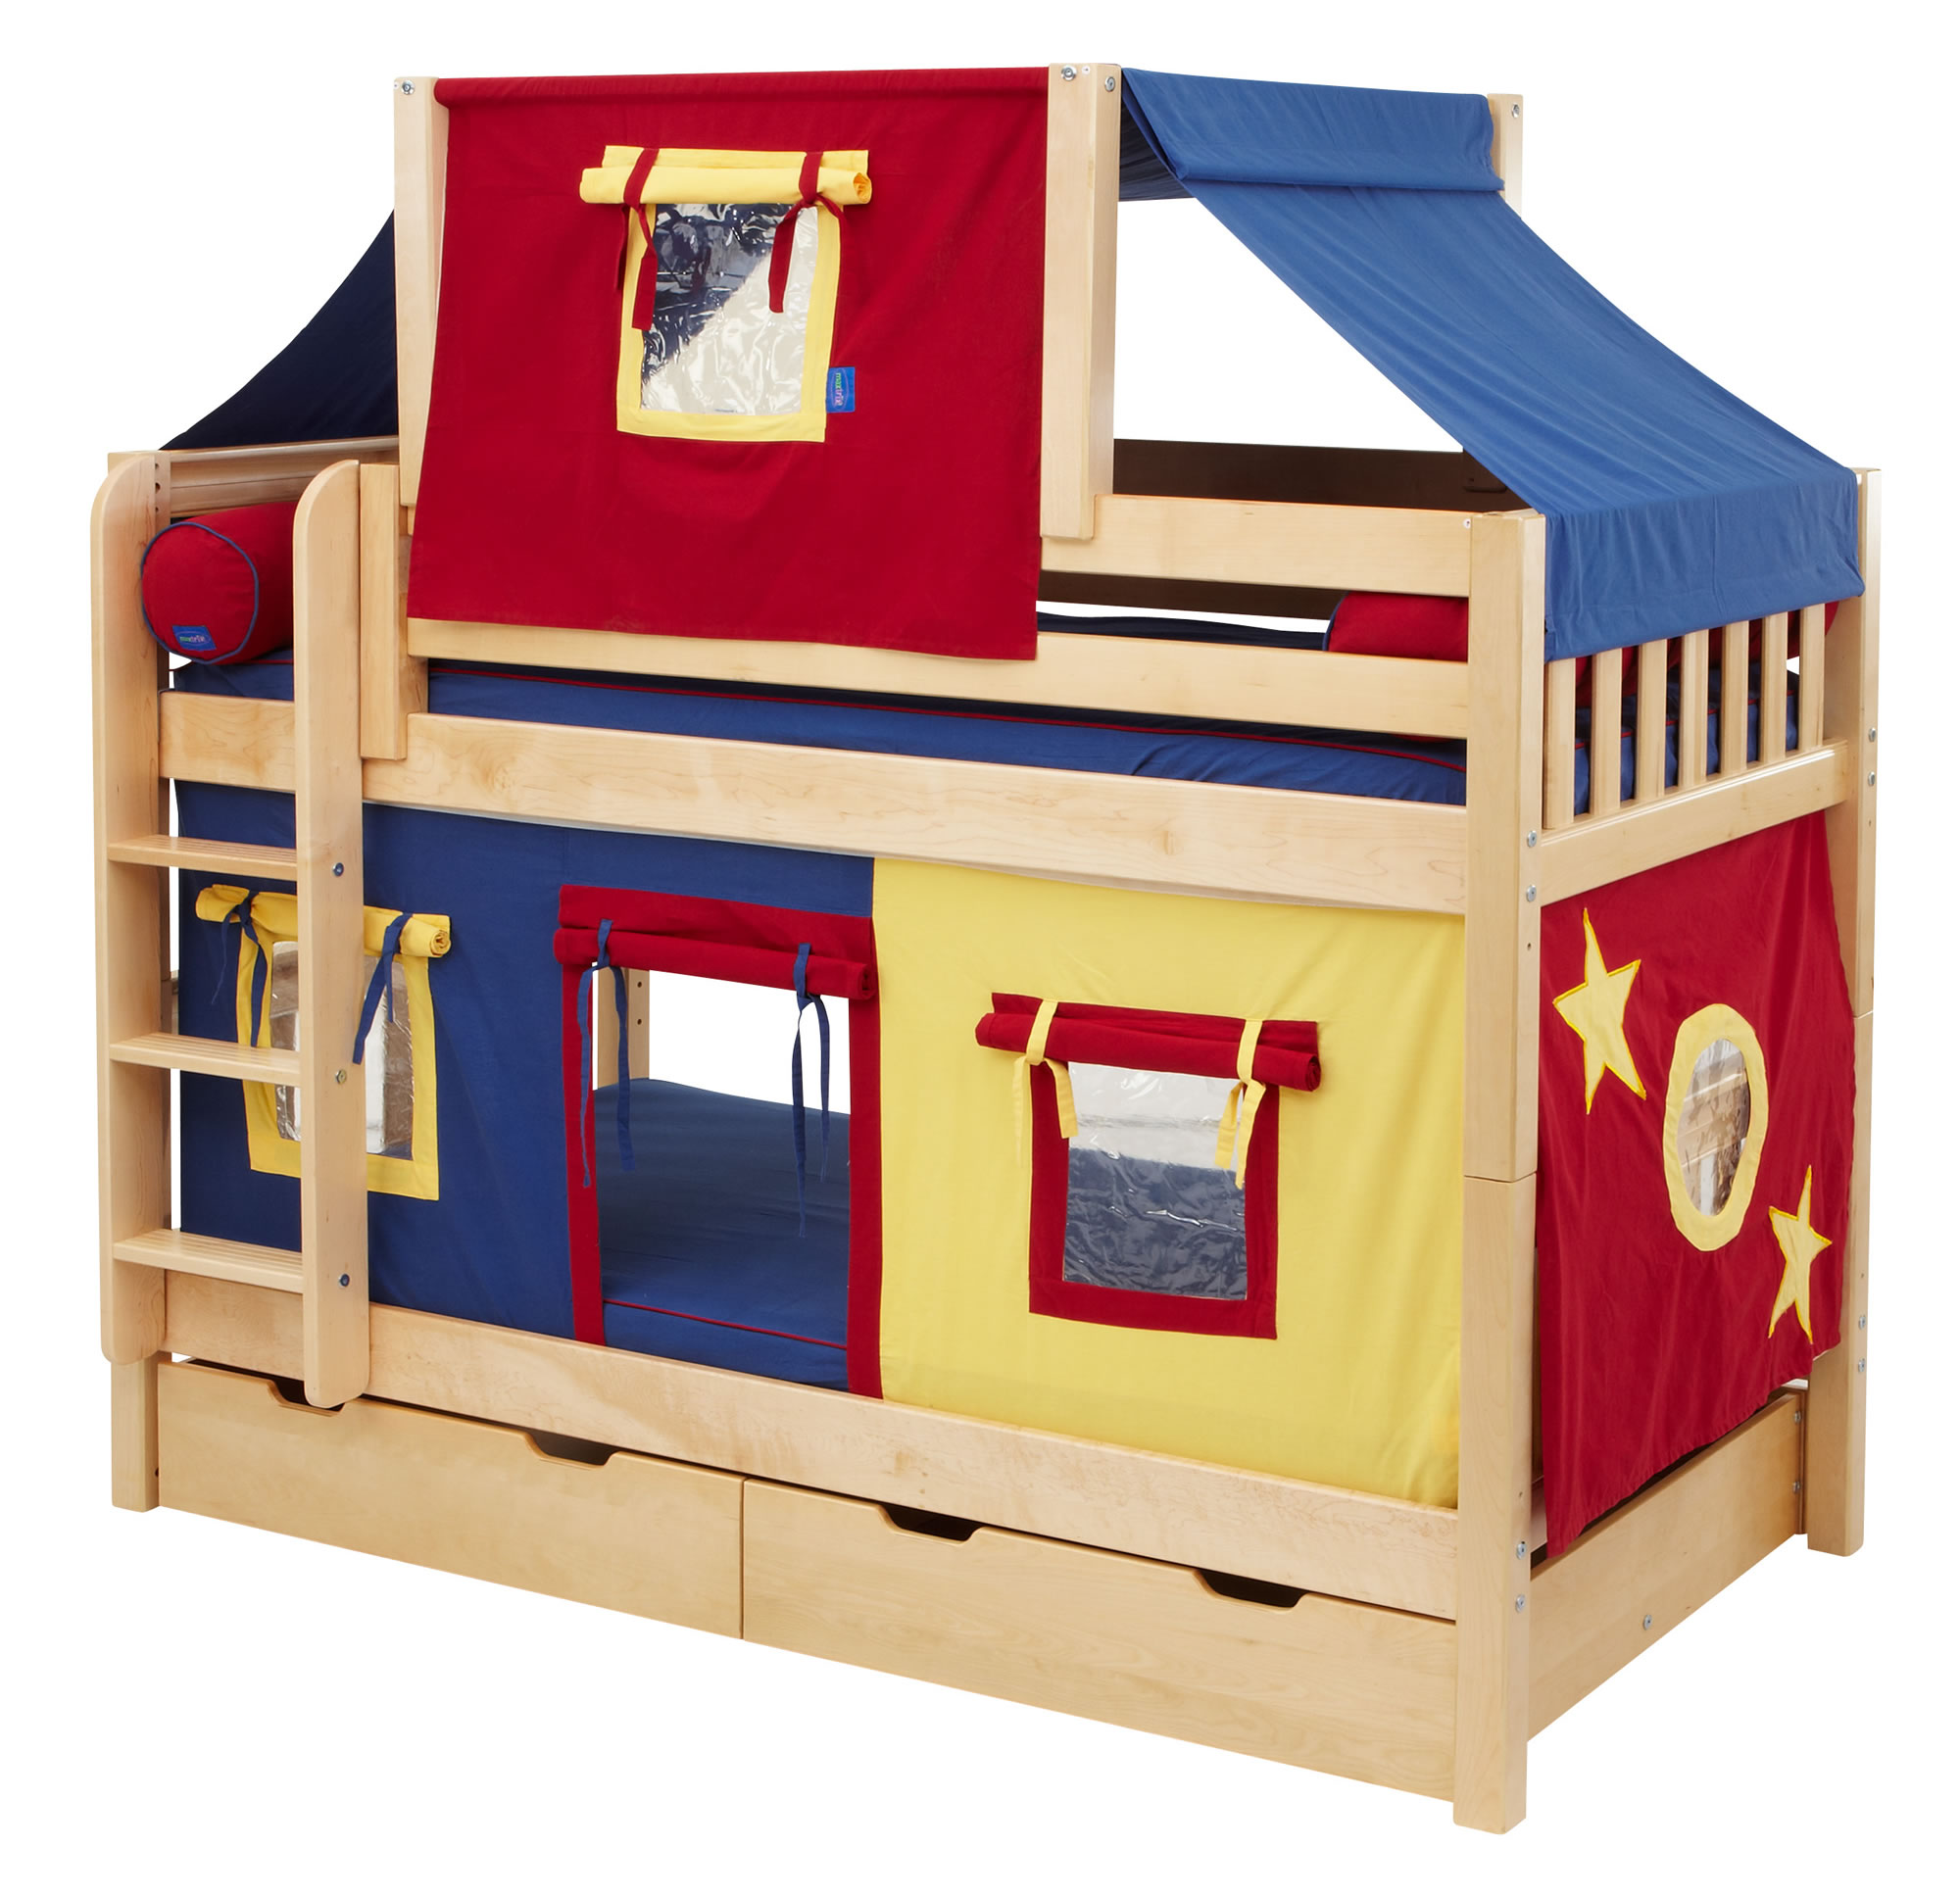 Fun Toddler Bunk Beds With Inspiring Ideas : Fun Fort Bunk Bed